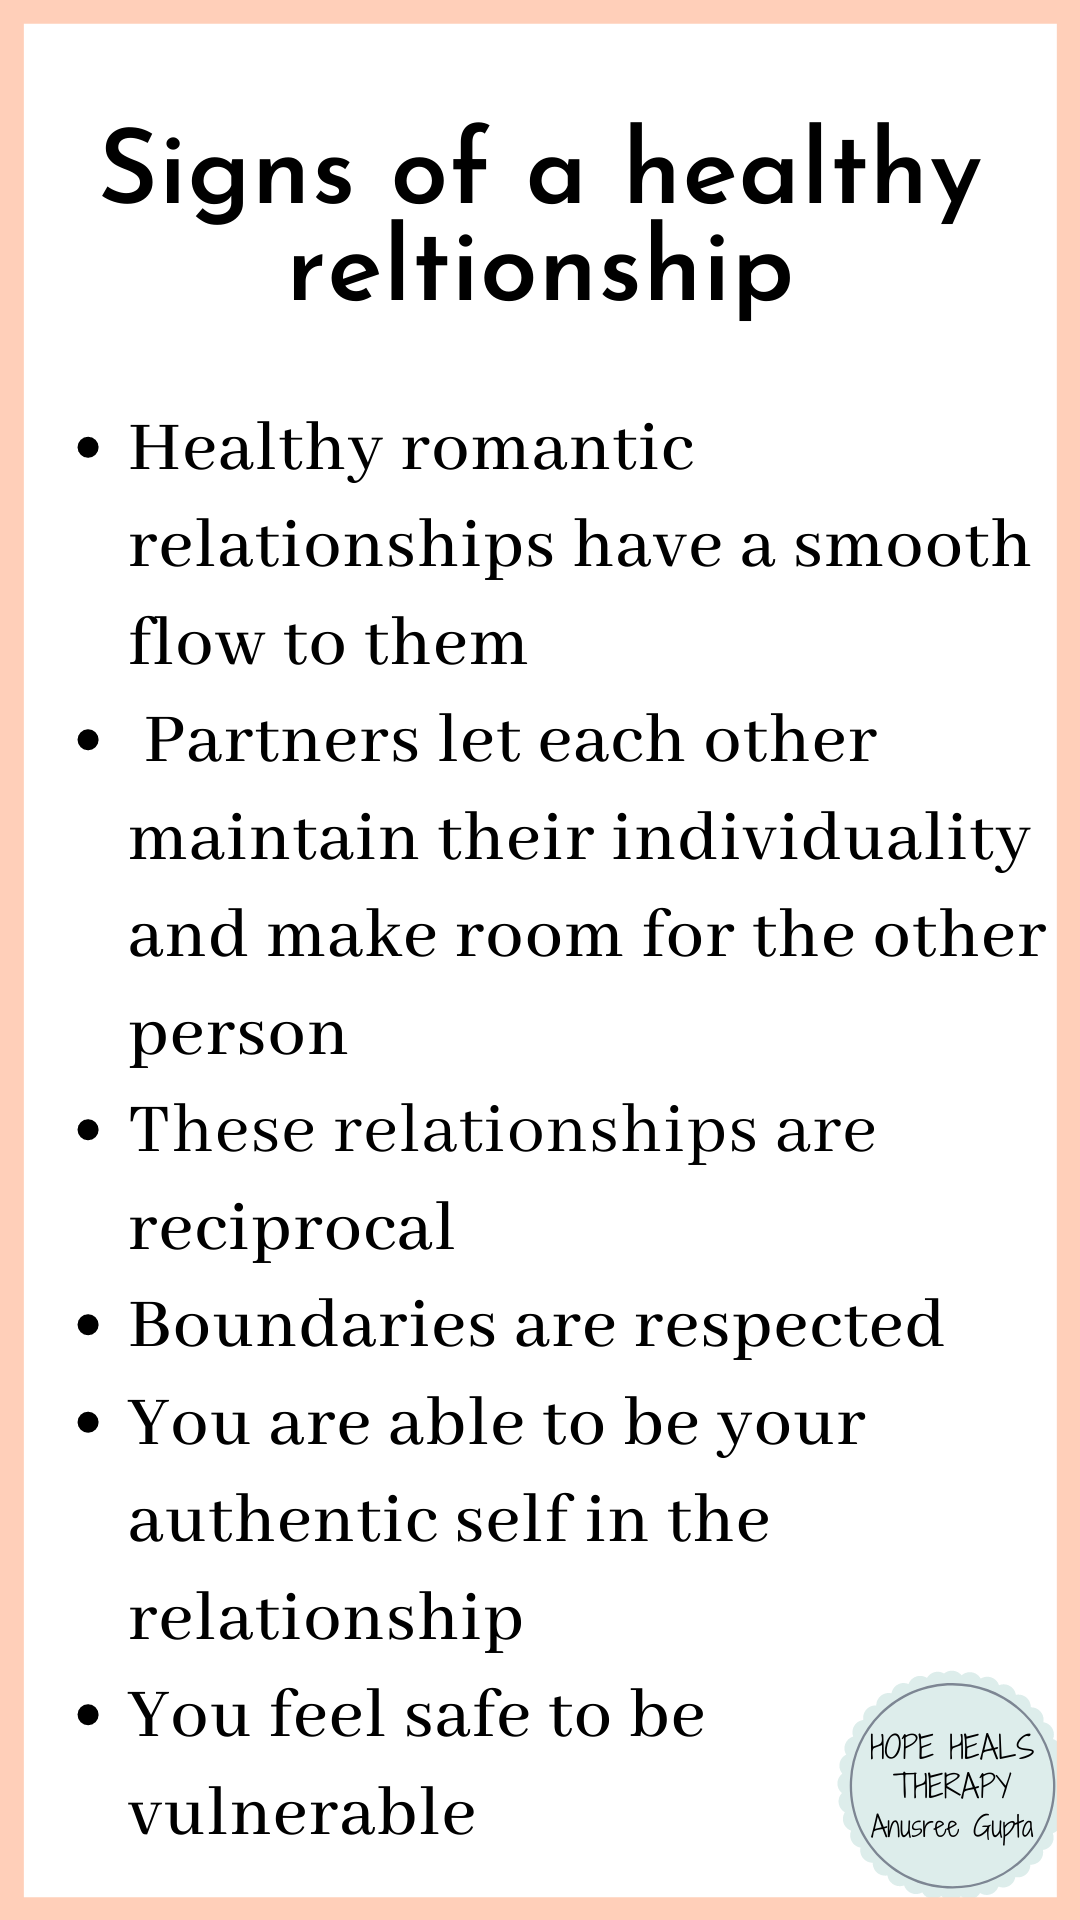 Signs-of-a-healthy-relationship